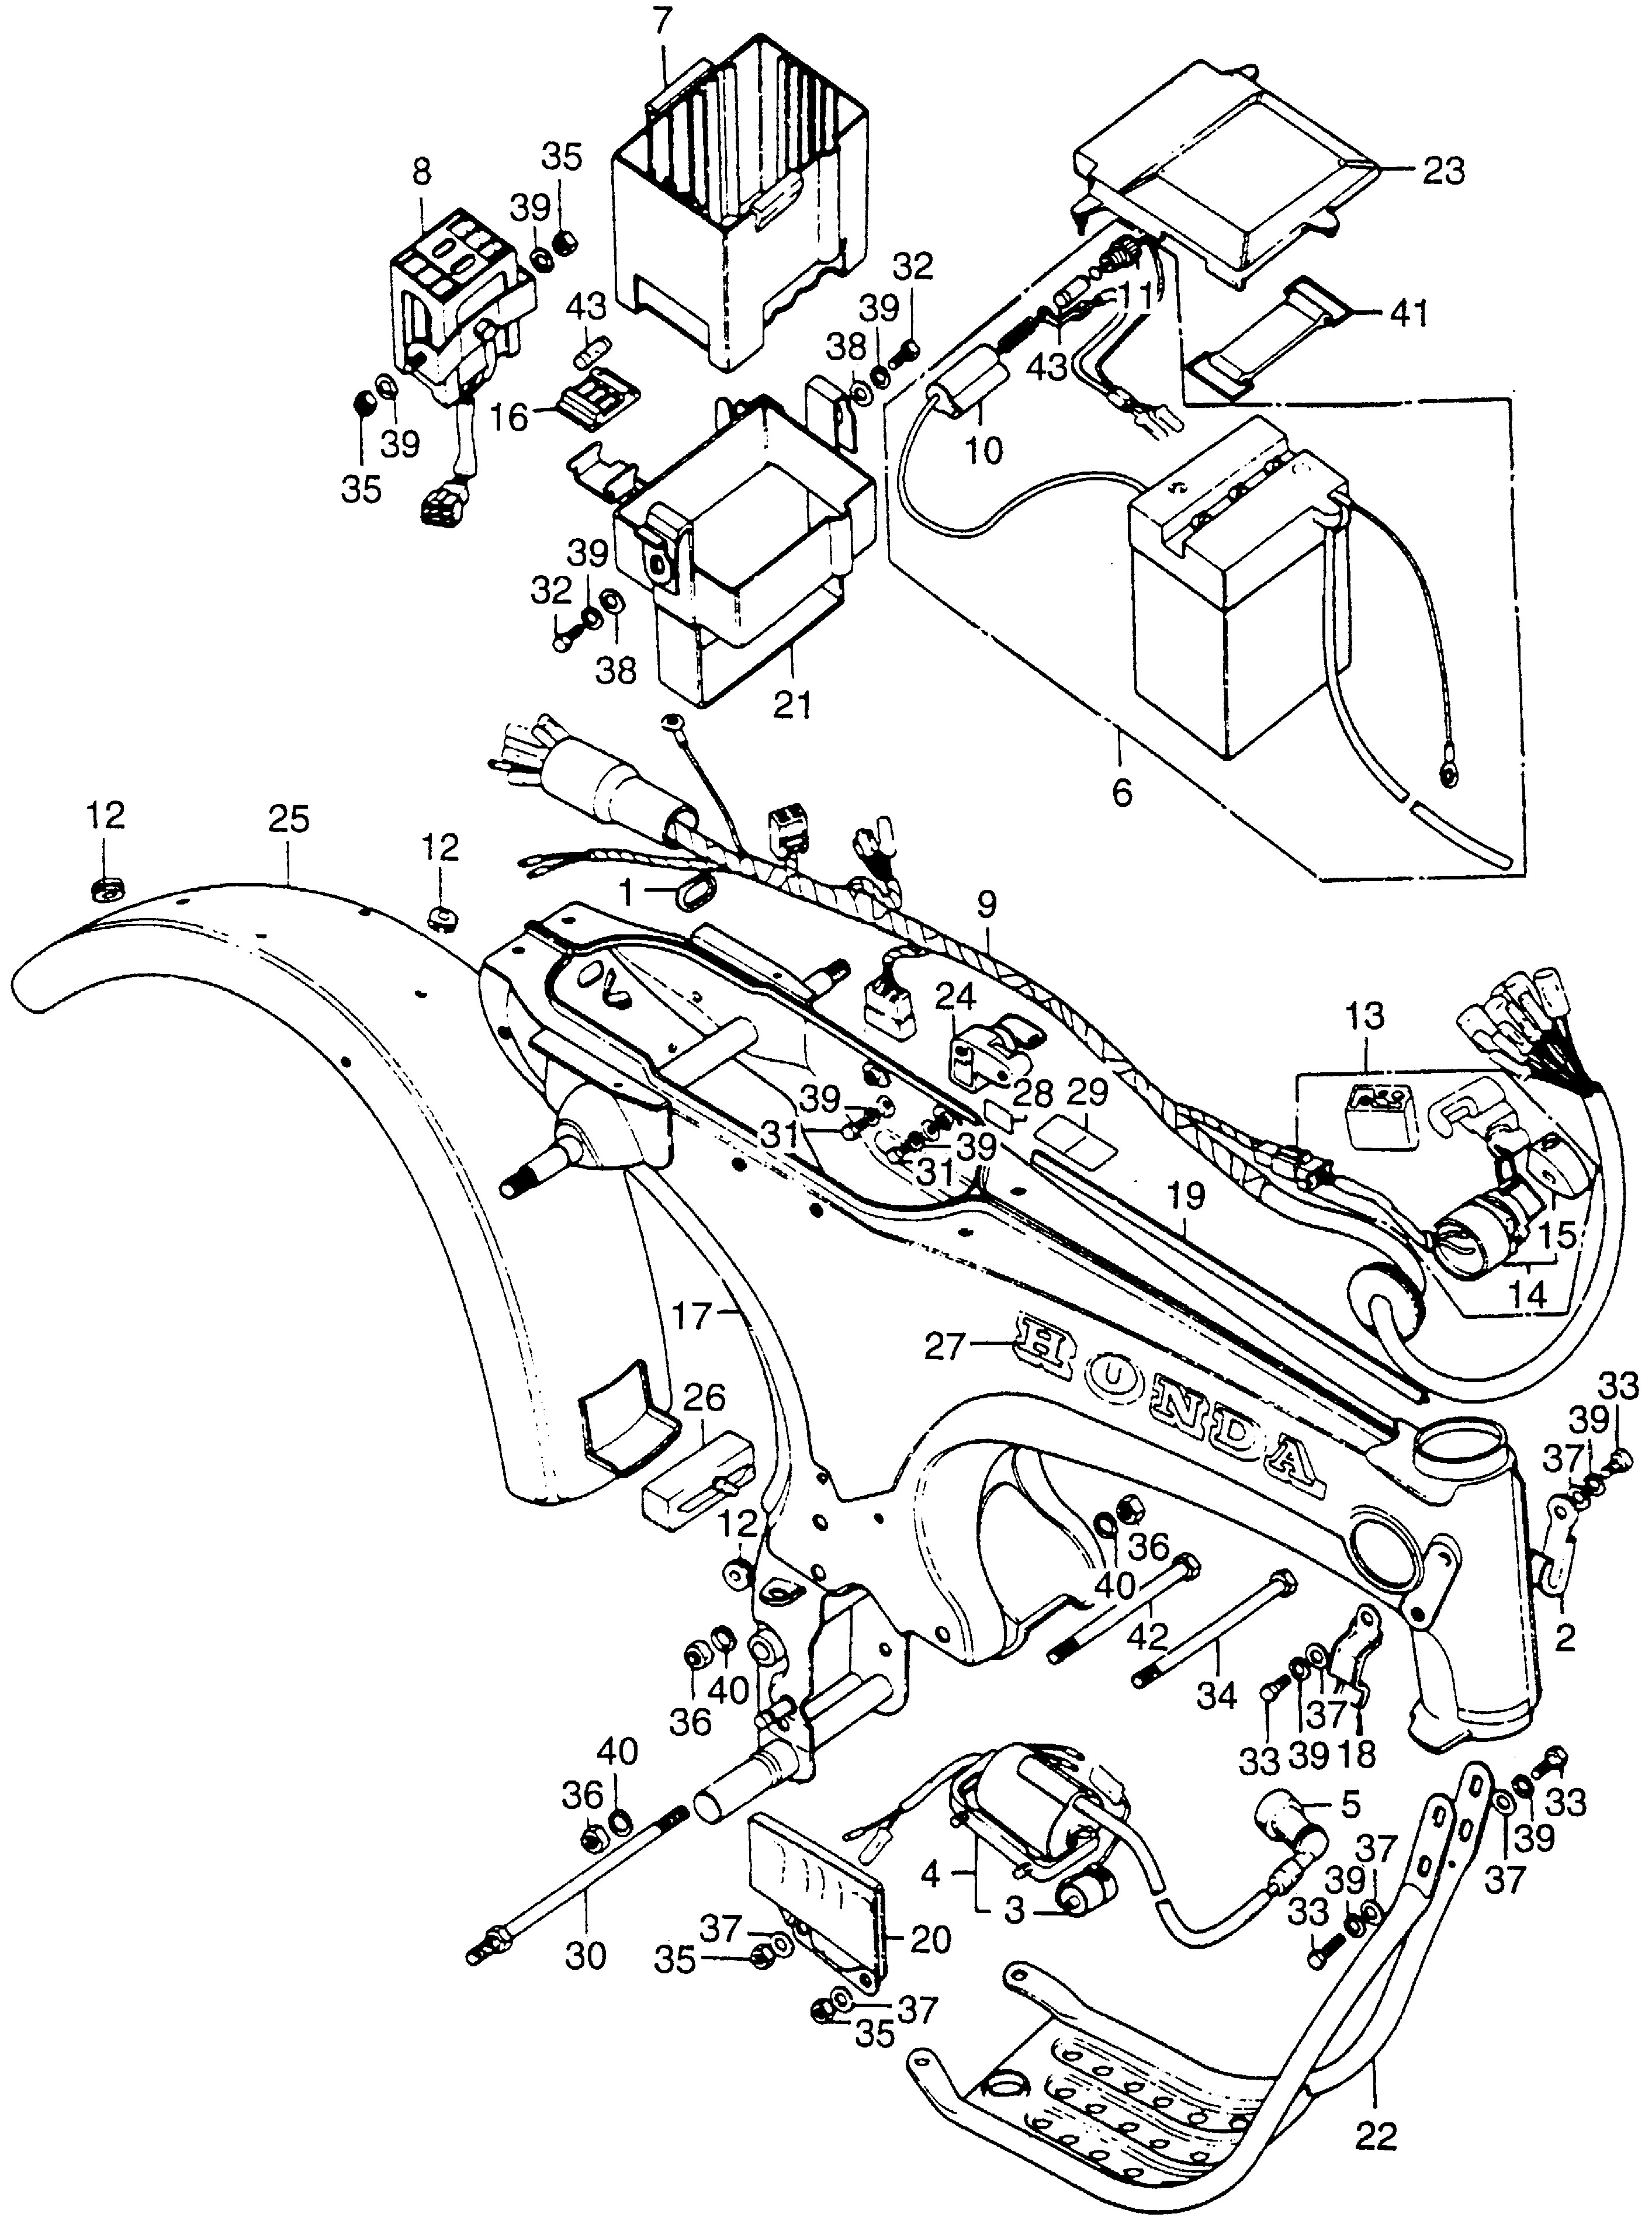 Enlarge 1973 st90 frame wire harness